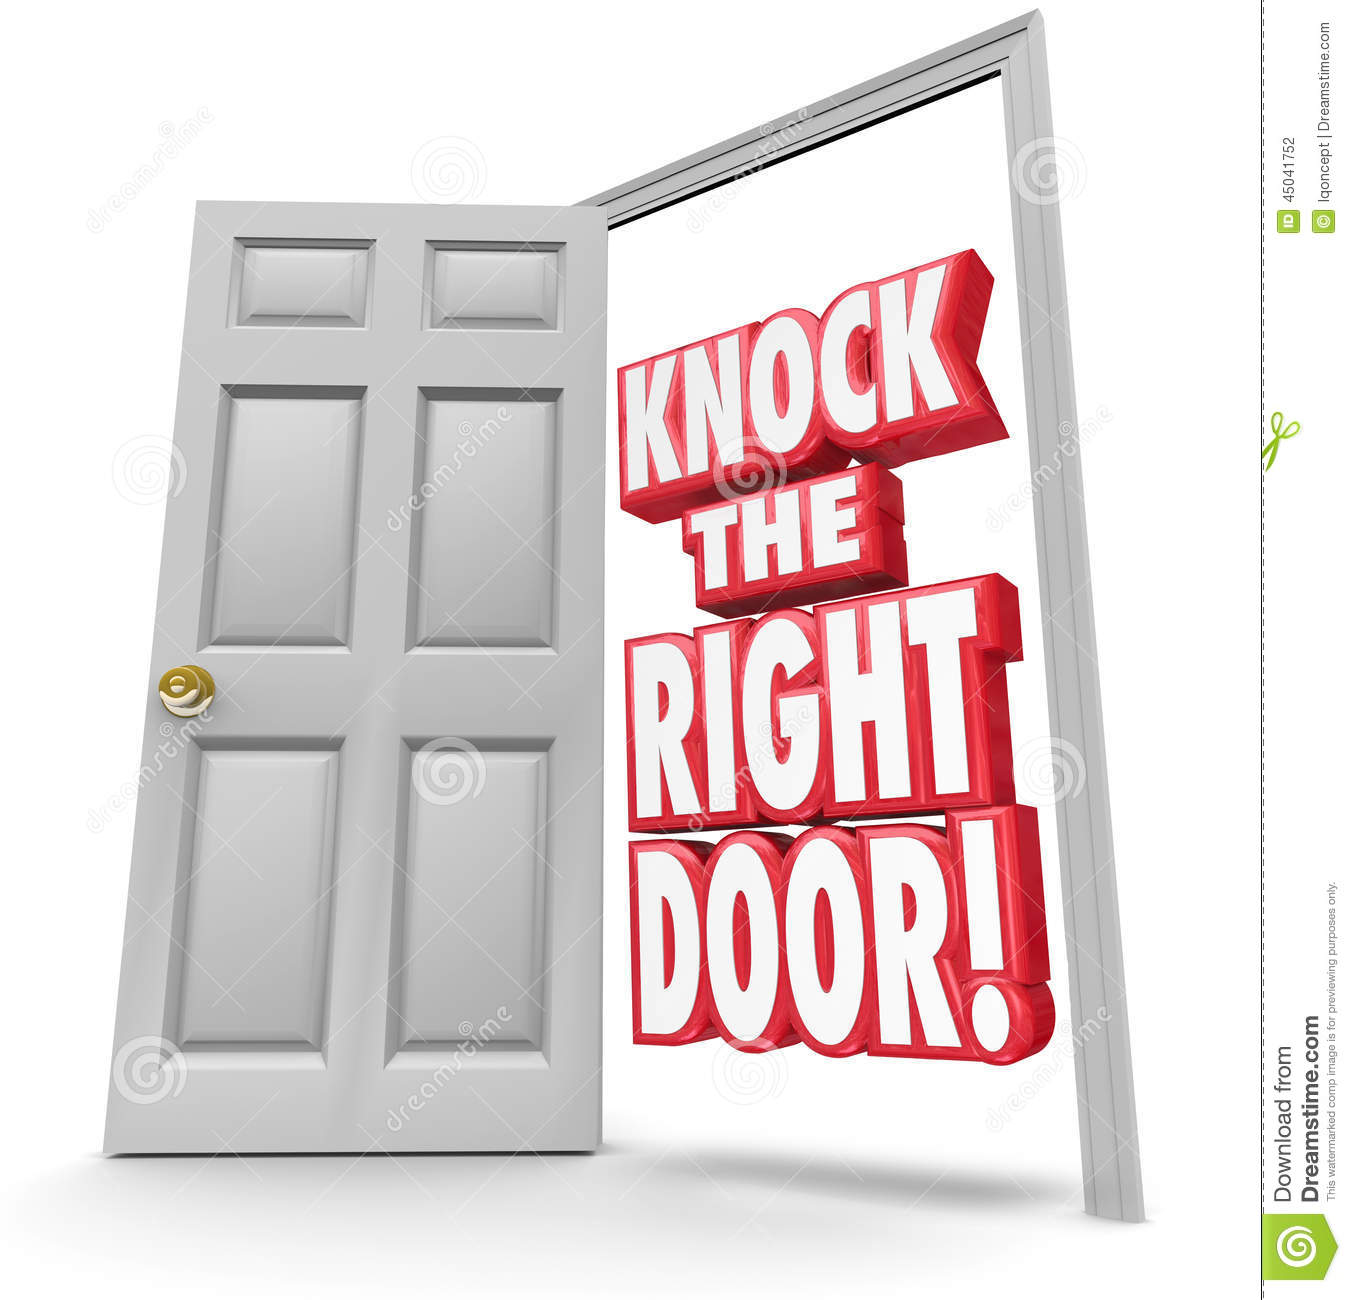 Knock the Right Door 3d Words Find Search Best Customers Solutio  sc 1 st  Dreamstime.com & Knock The Right Door 3d Words Find Search Best Customers Solutio ...